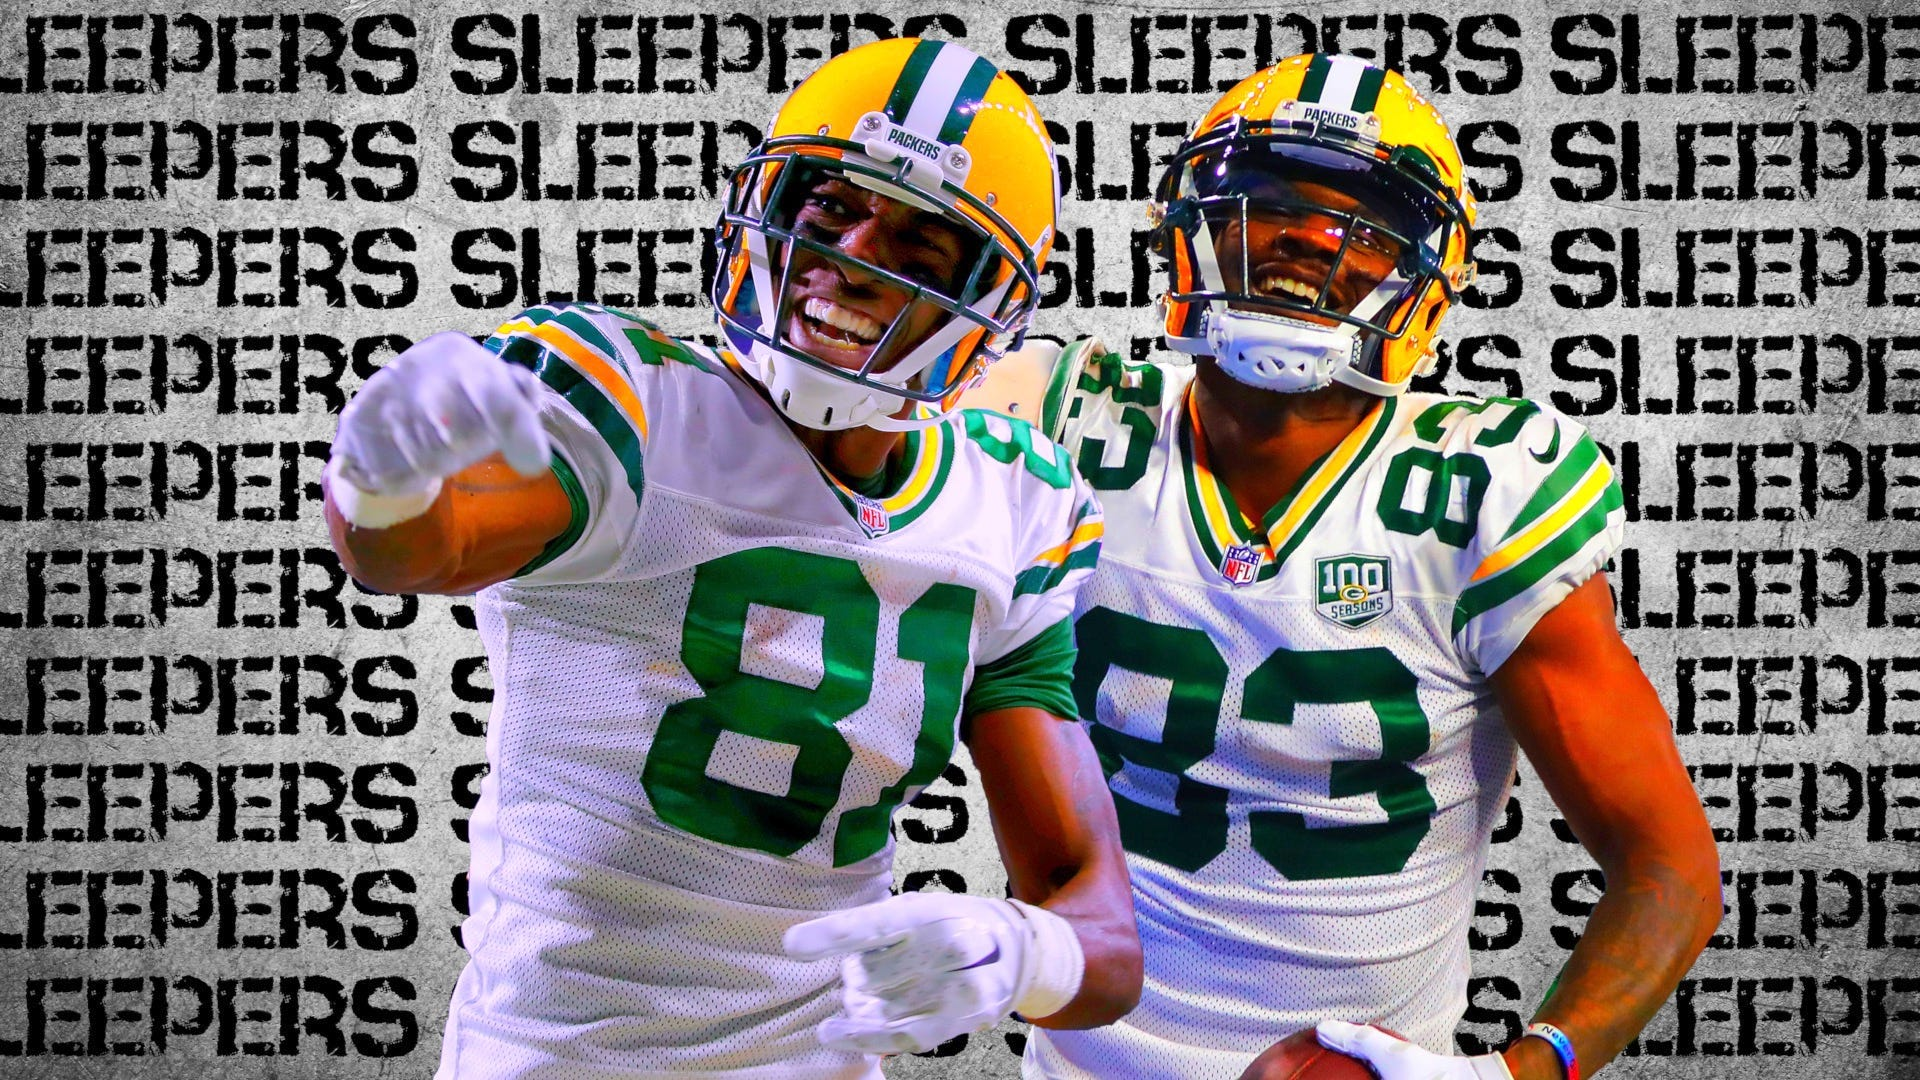 Four fantasy football sleepers you need to own